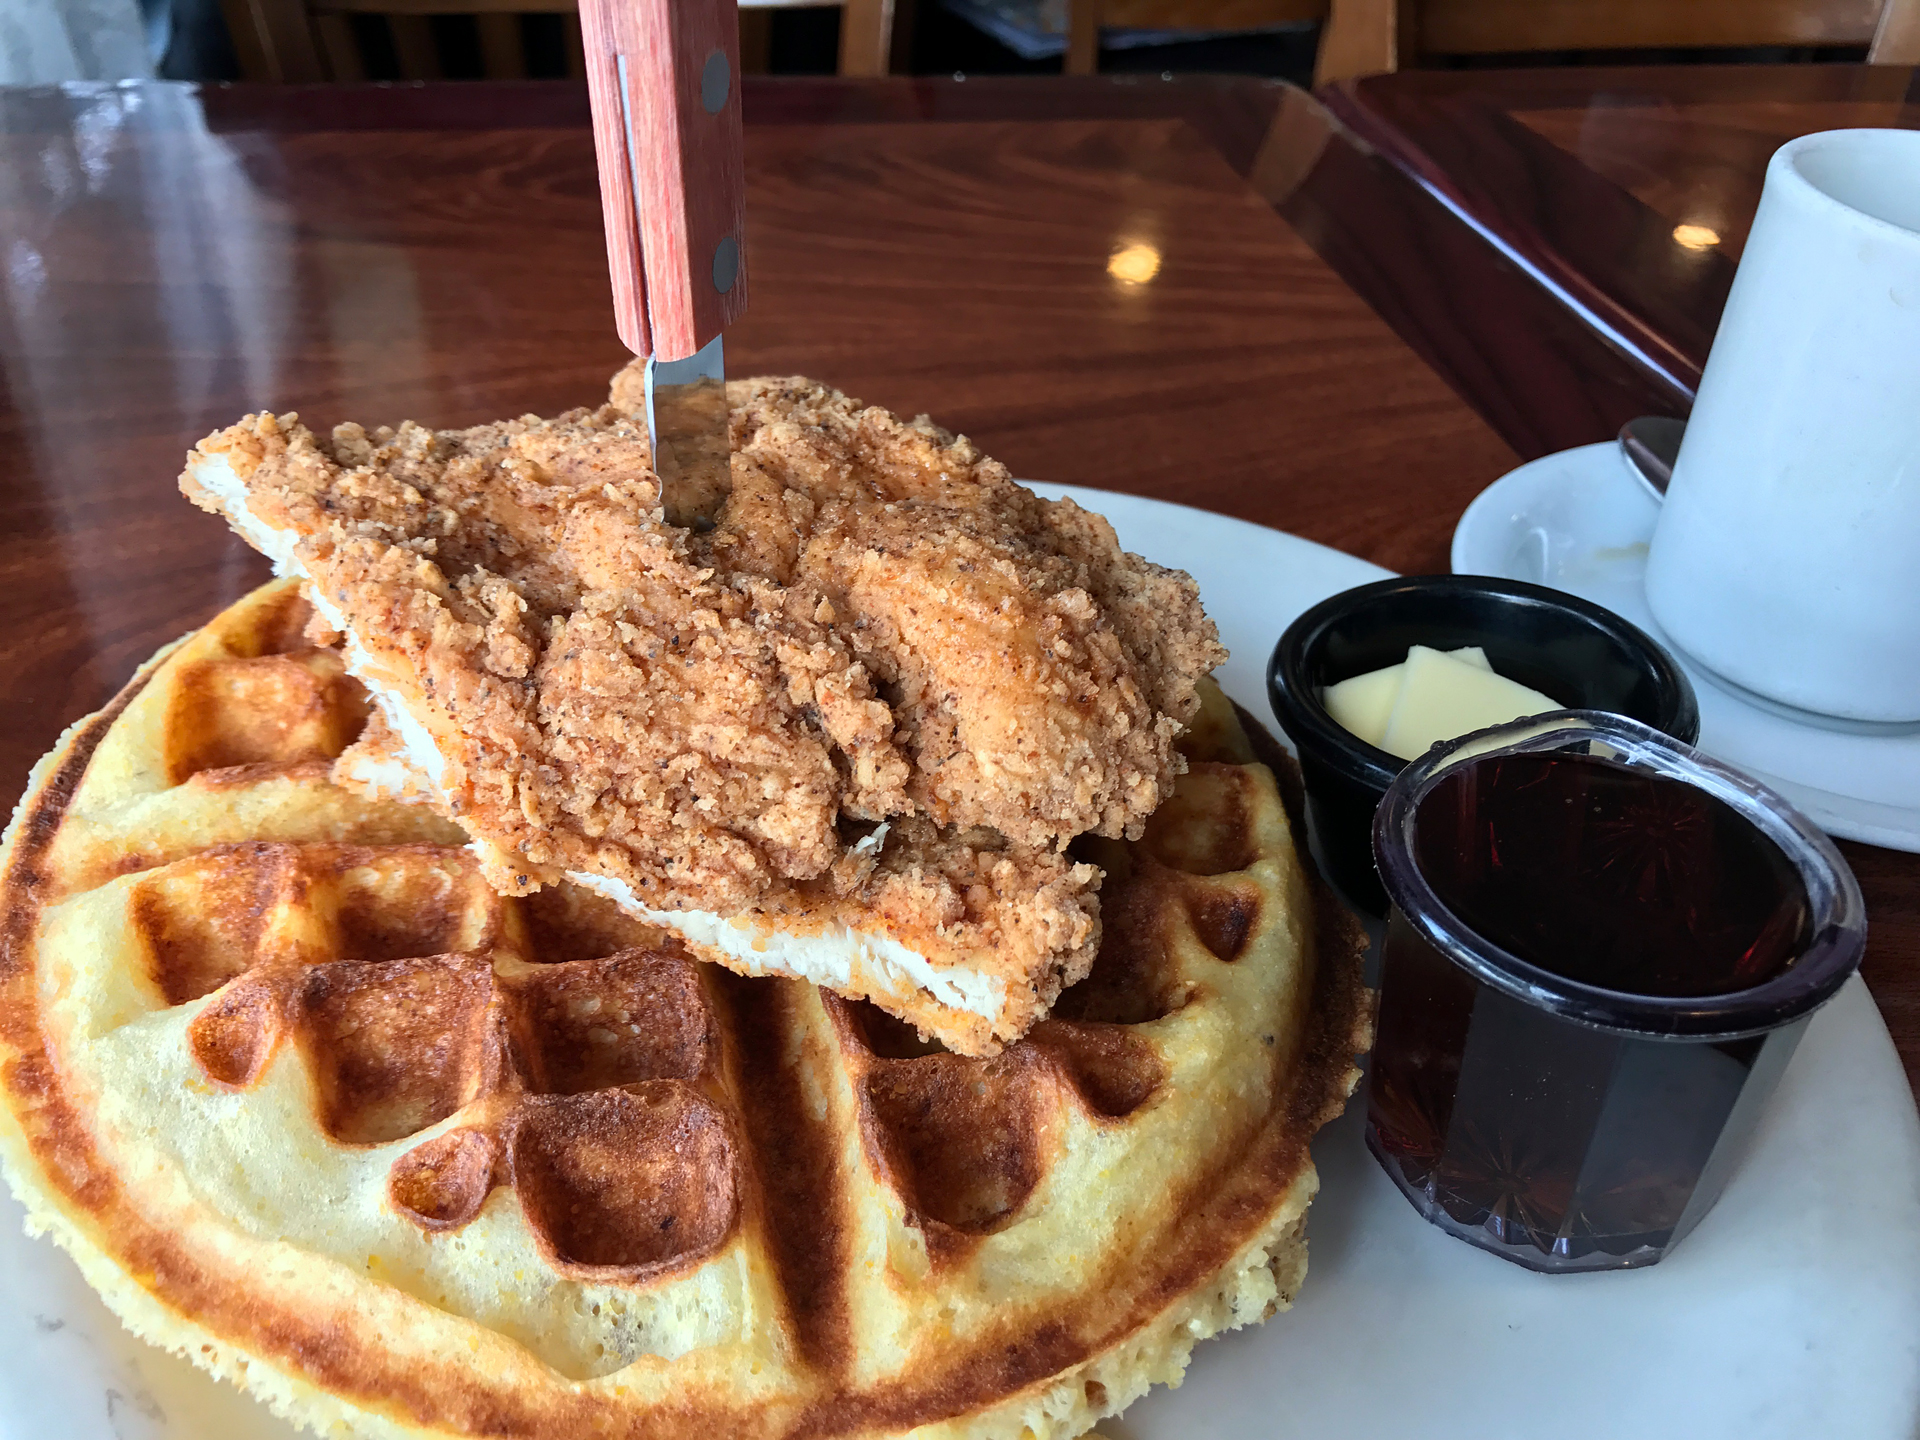 Chicken and Waffles at Aunt Mary's Cafe in Temescal.